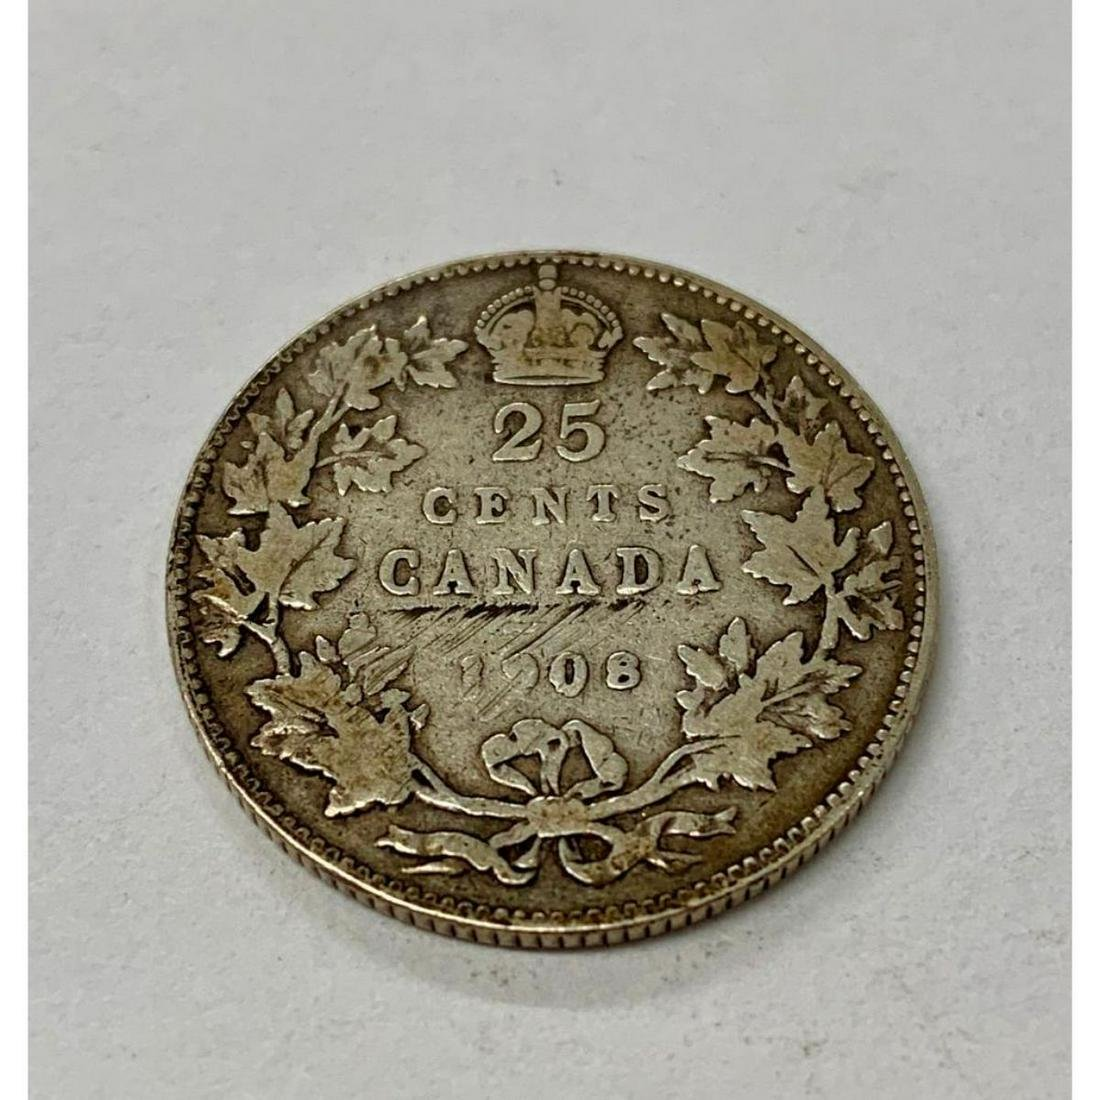 1908 Canadian 25 Cent Coin